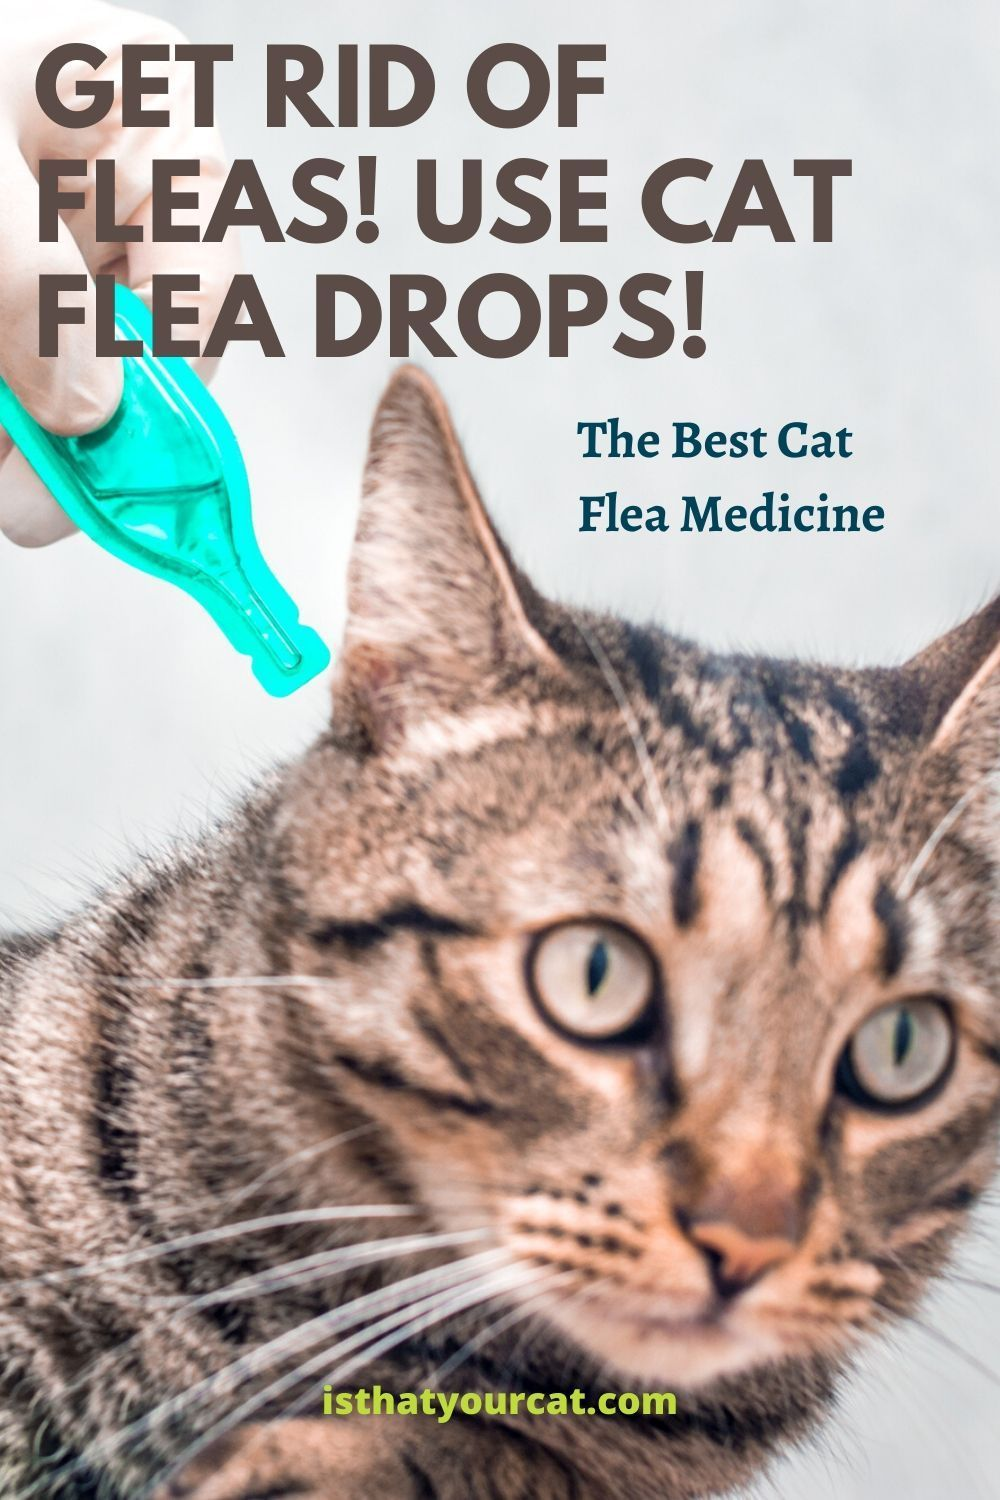 Cat Flea Drops The Best Flea Medicine For Cats In 2020 Cat Fleas Flea Medicine For Cats Cat Medicine